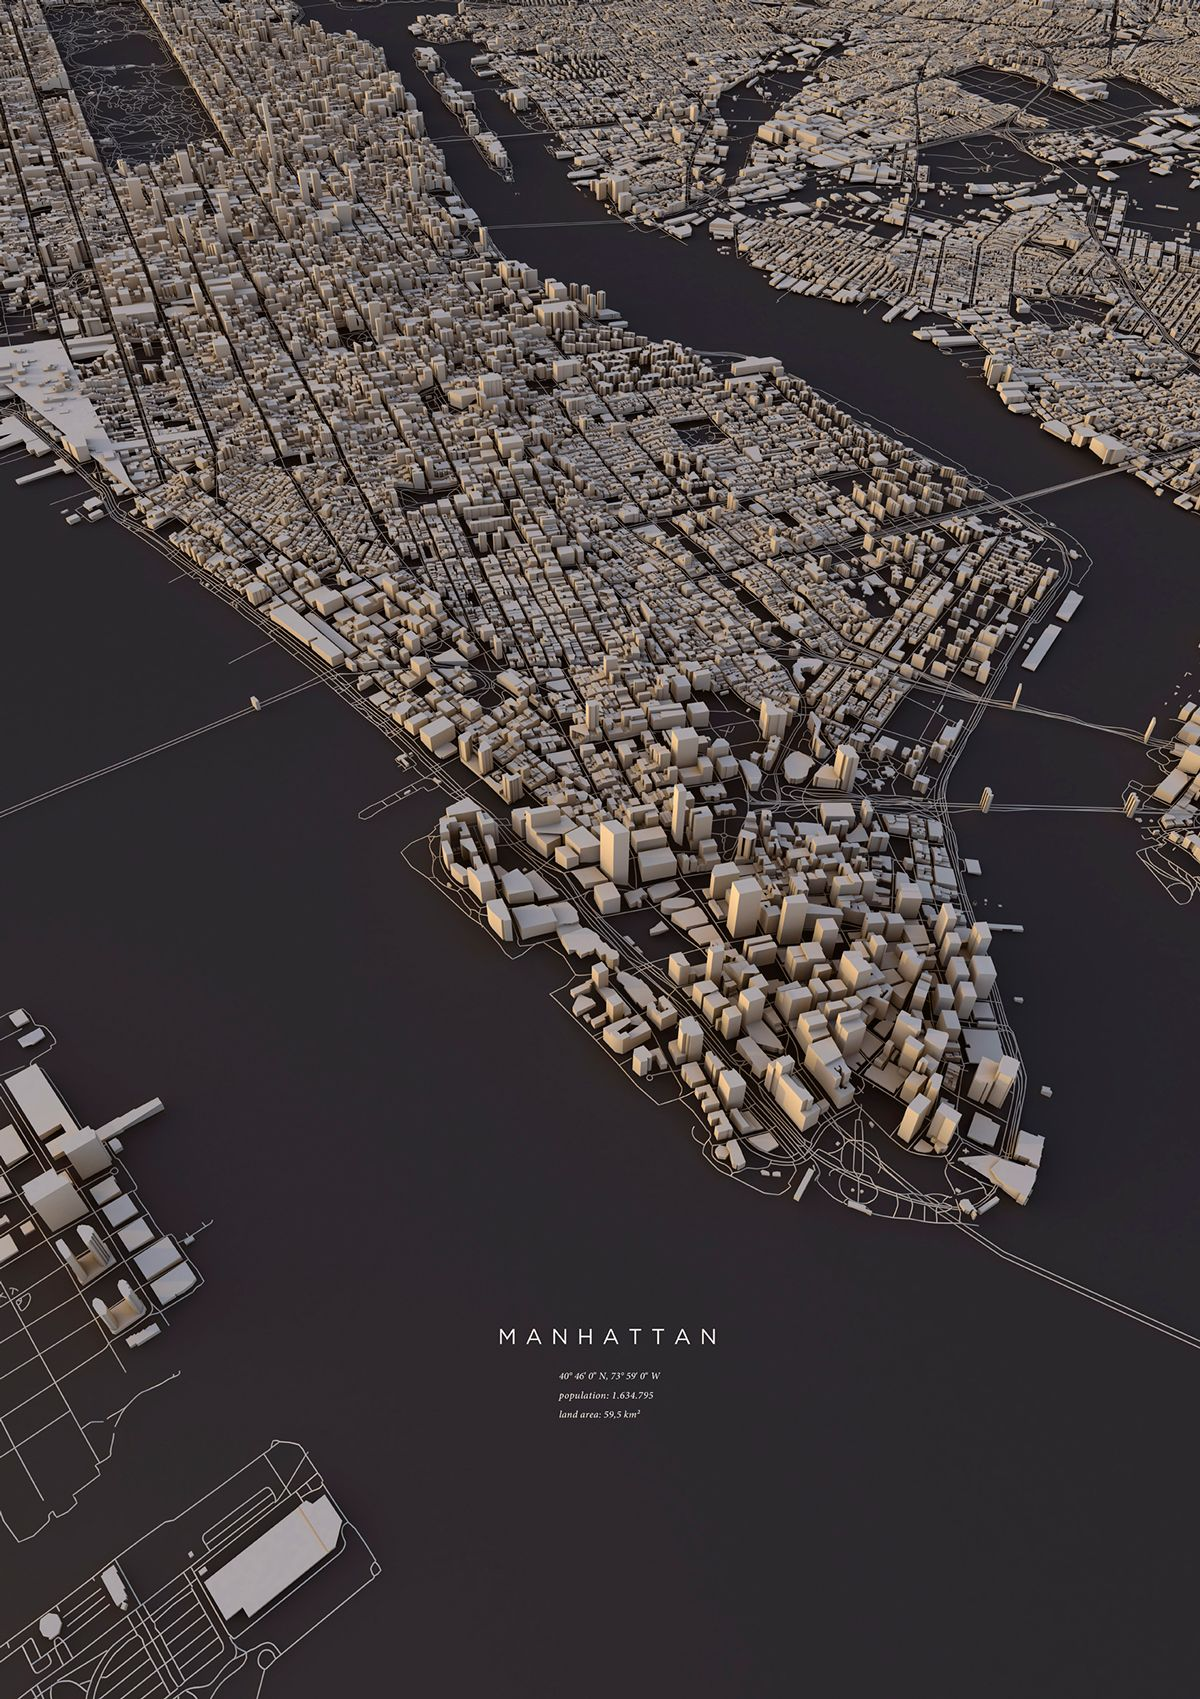 Best Ideas About Earth Map D On Pinterest Earth Globe Map - New york map in 3d